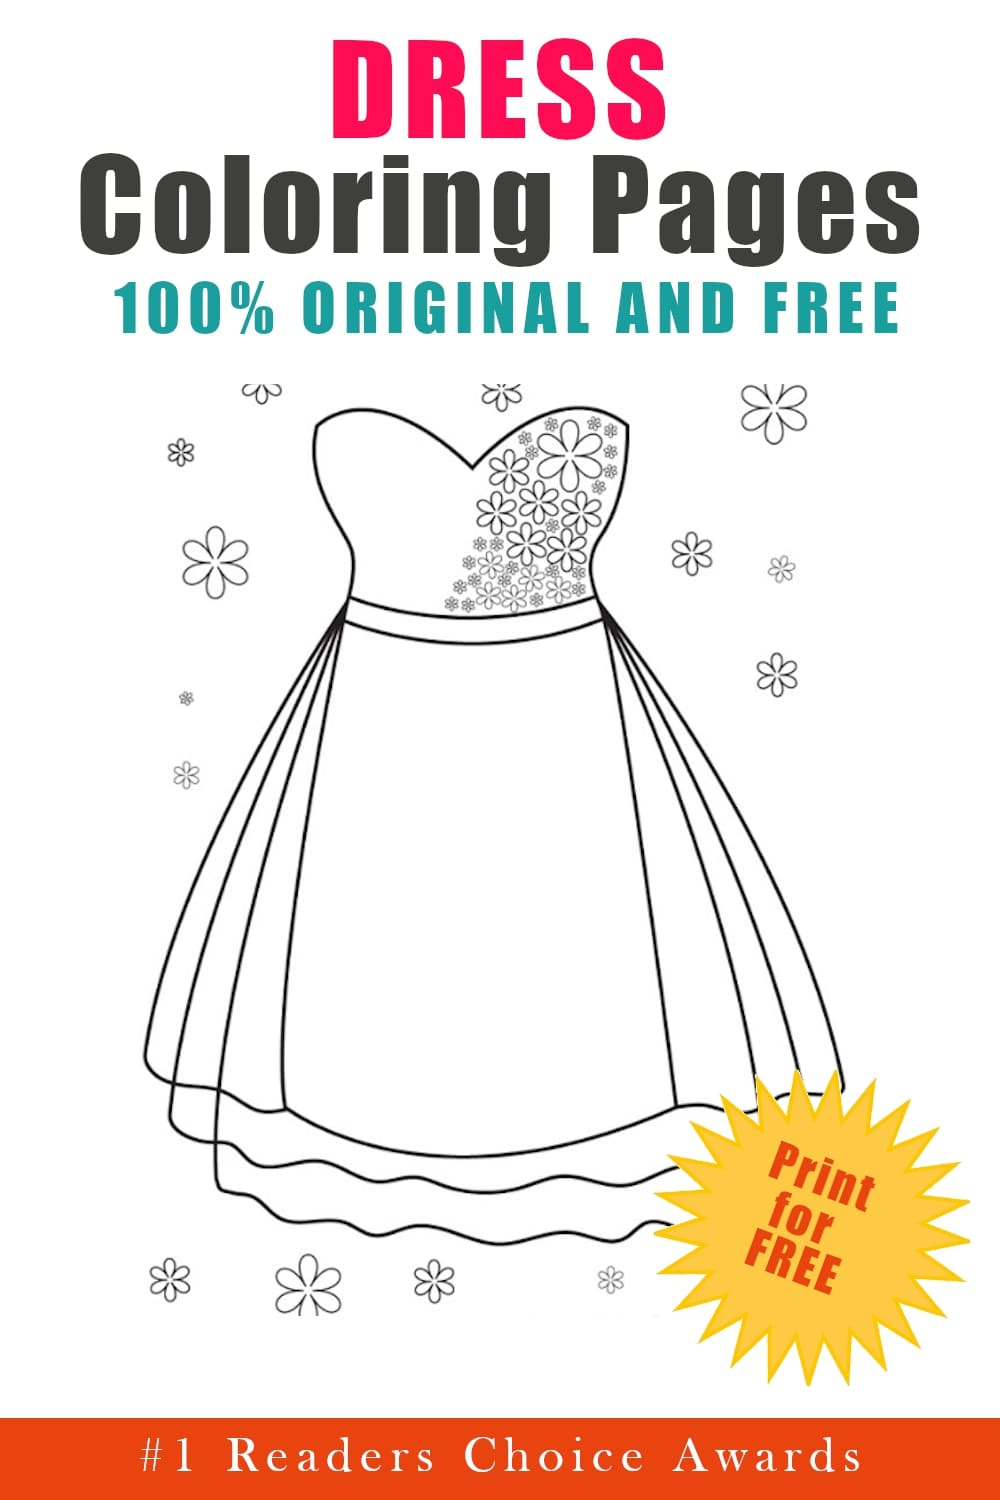 original and free dress coloring pages